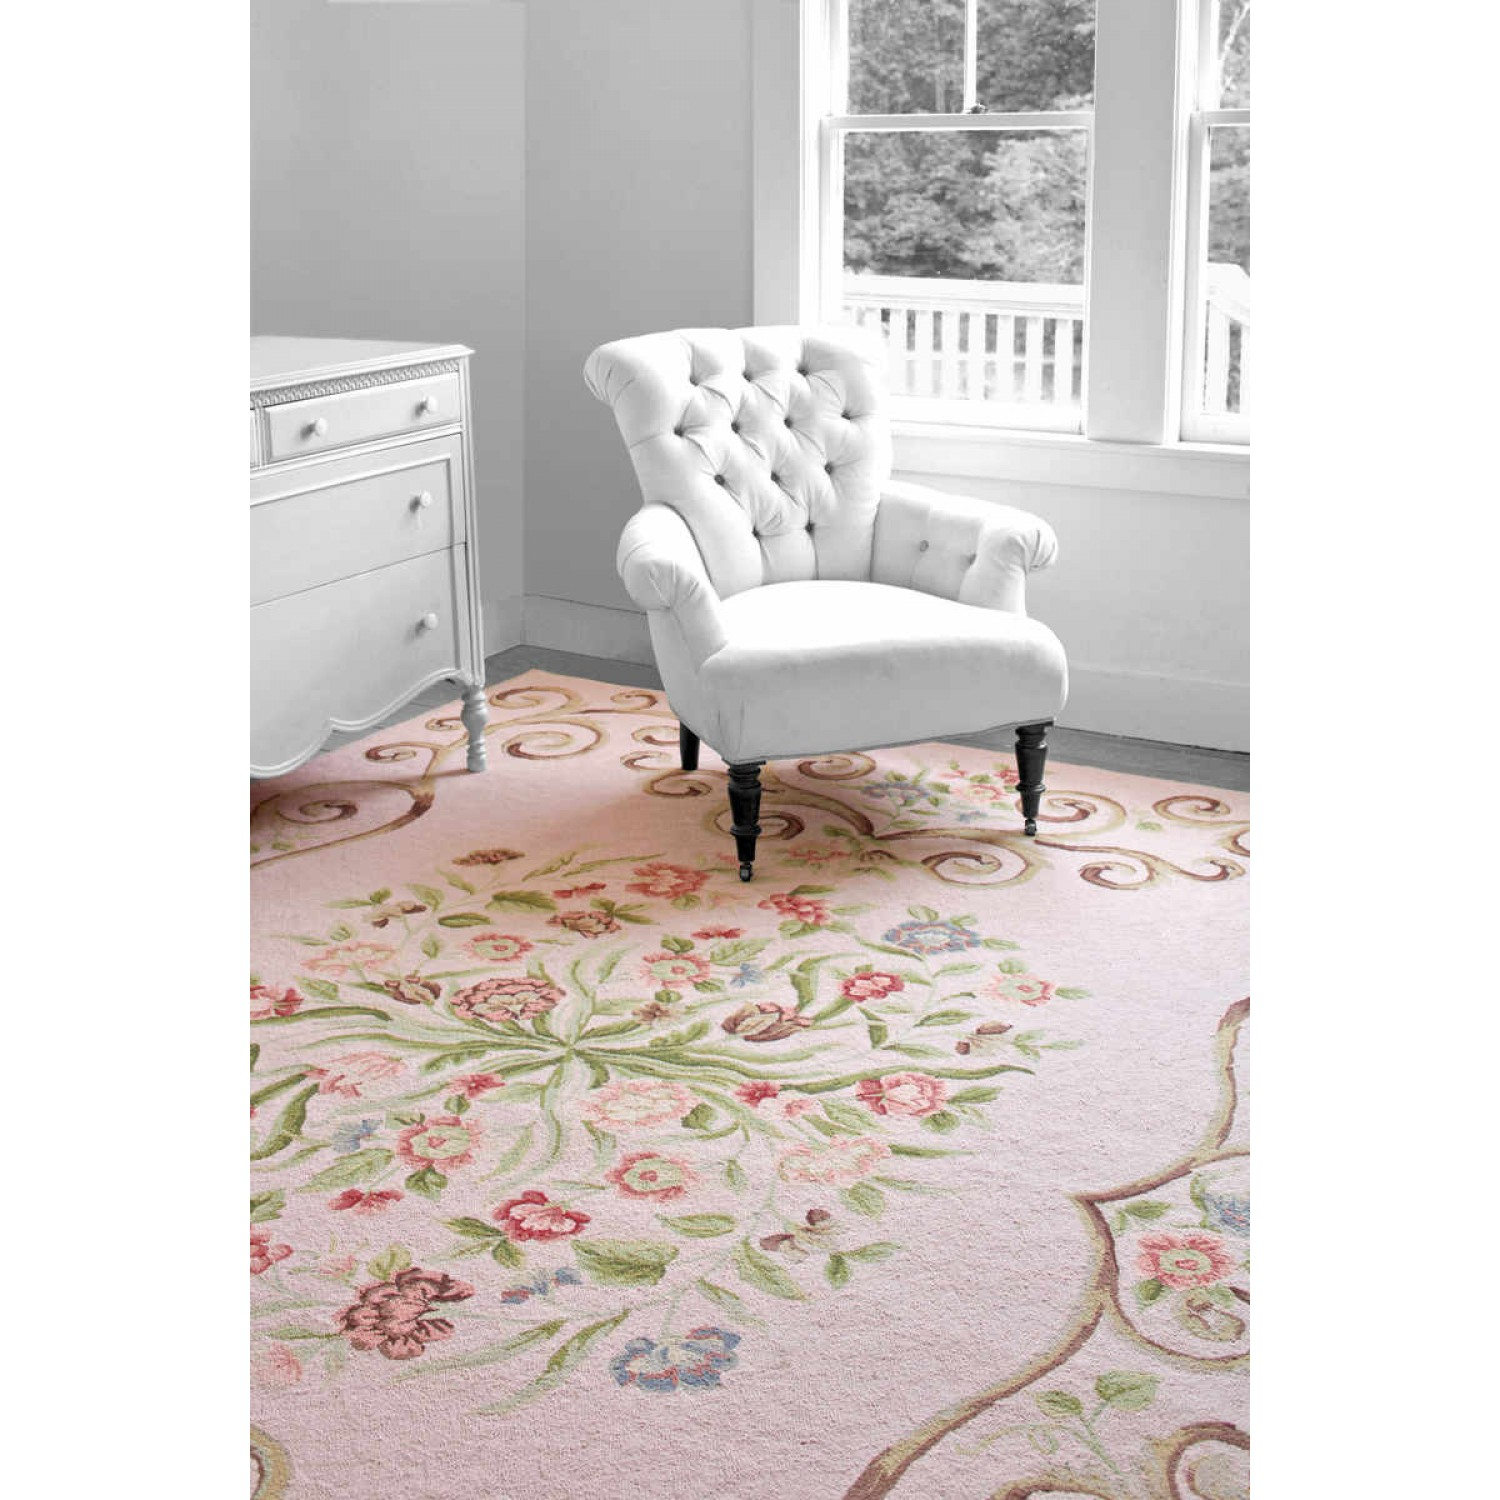 lovely Dash And Albert Rugs siena rose wool micro hooked on wooden floor matched with white wall for living room decor ideas